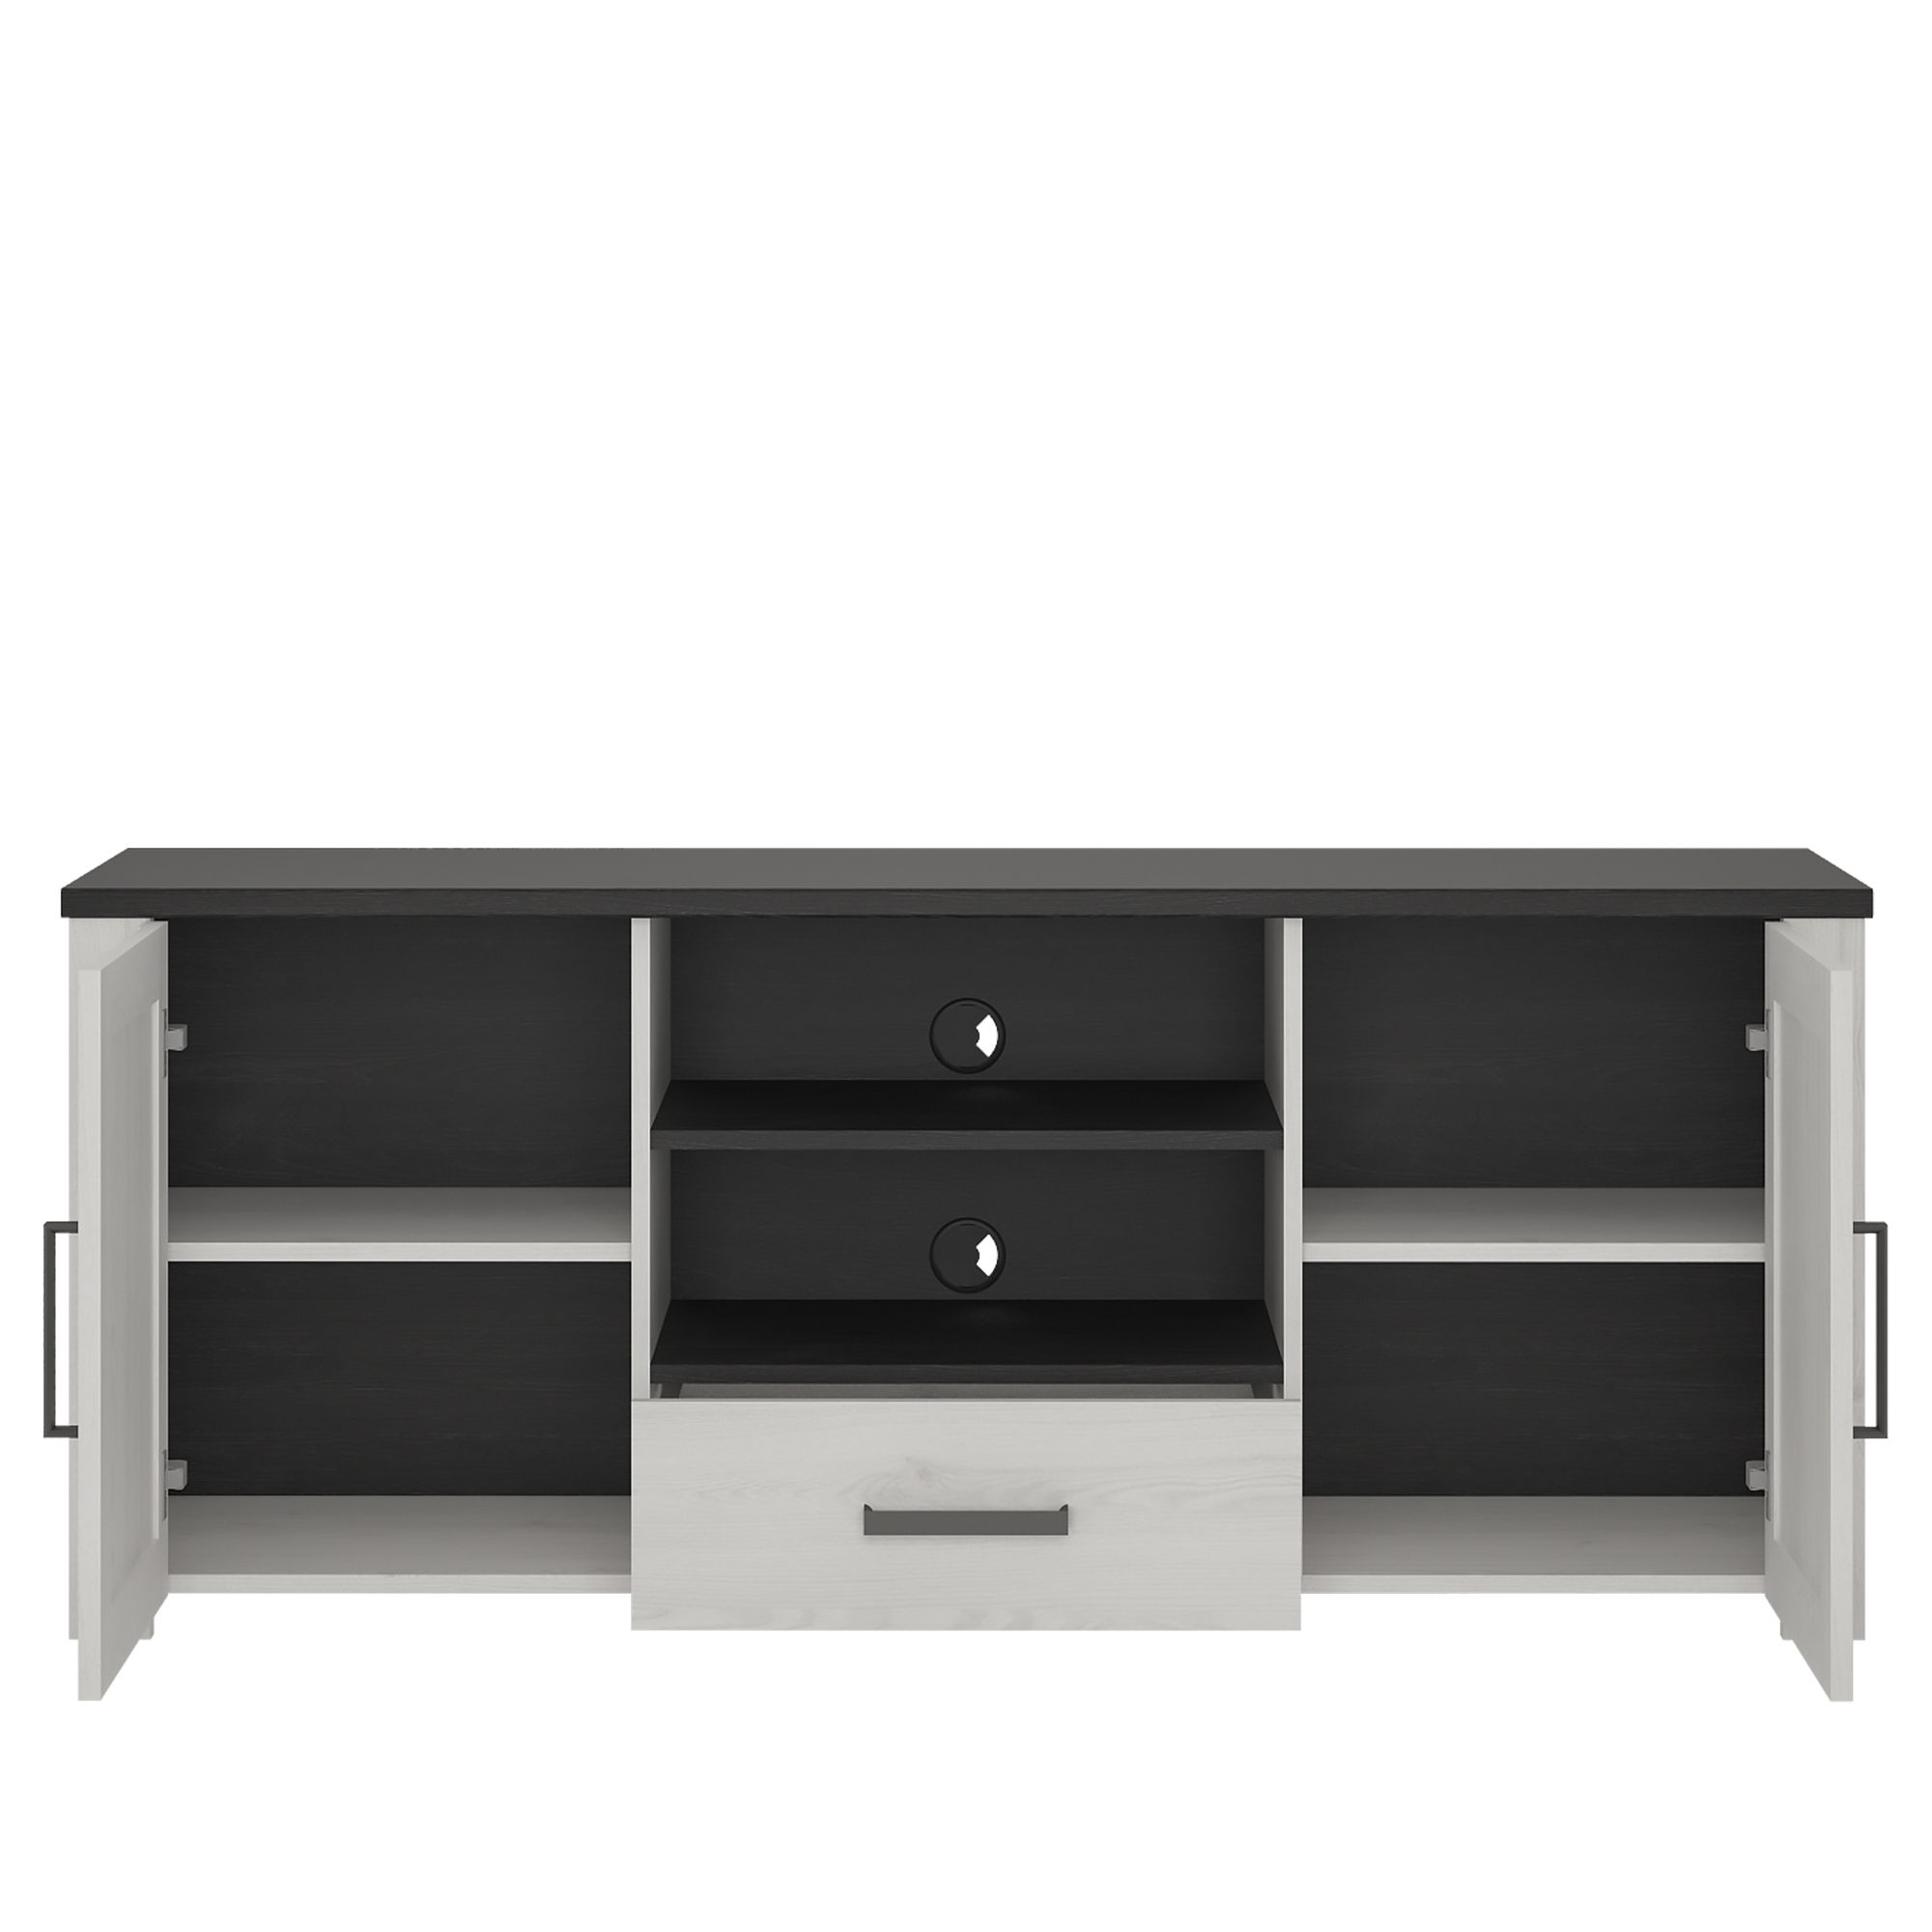 Tiva Ladder Tv Stands Throughout Well Liked Provence High Tv Cabinet 2 Door 1 Drawer (View 2 of 10)